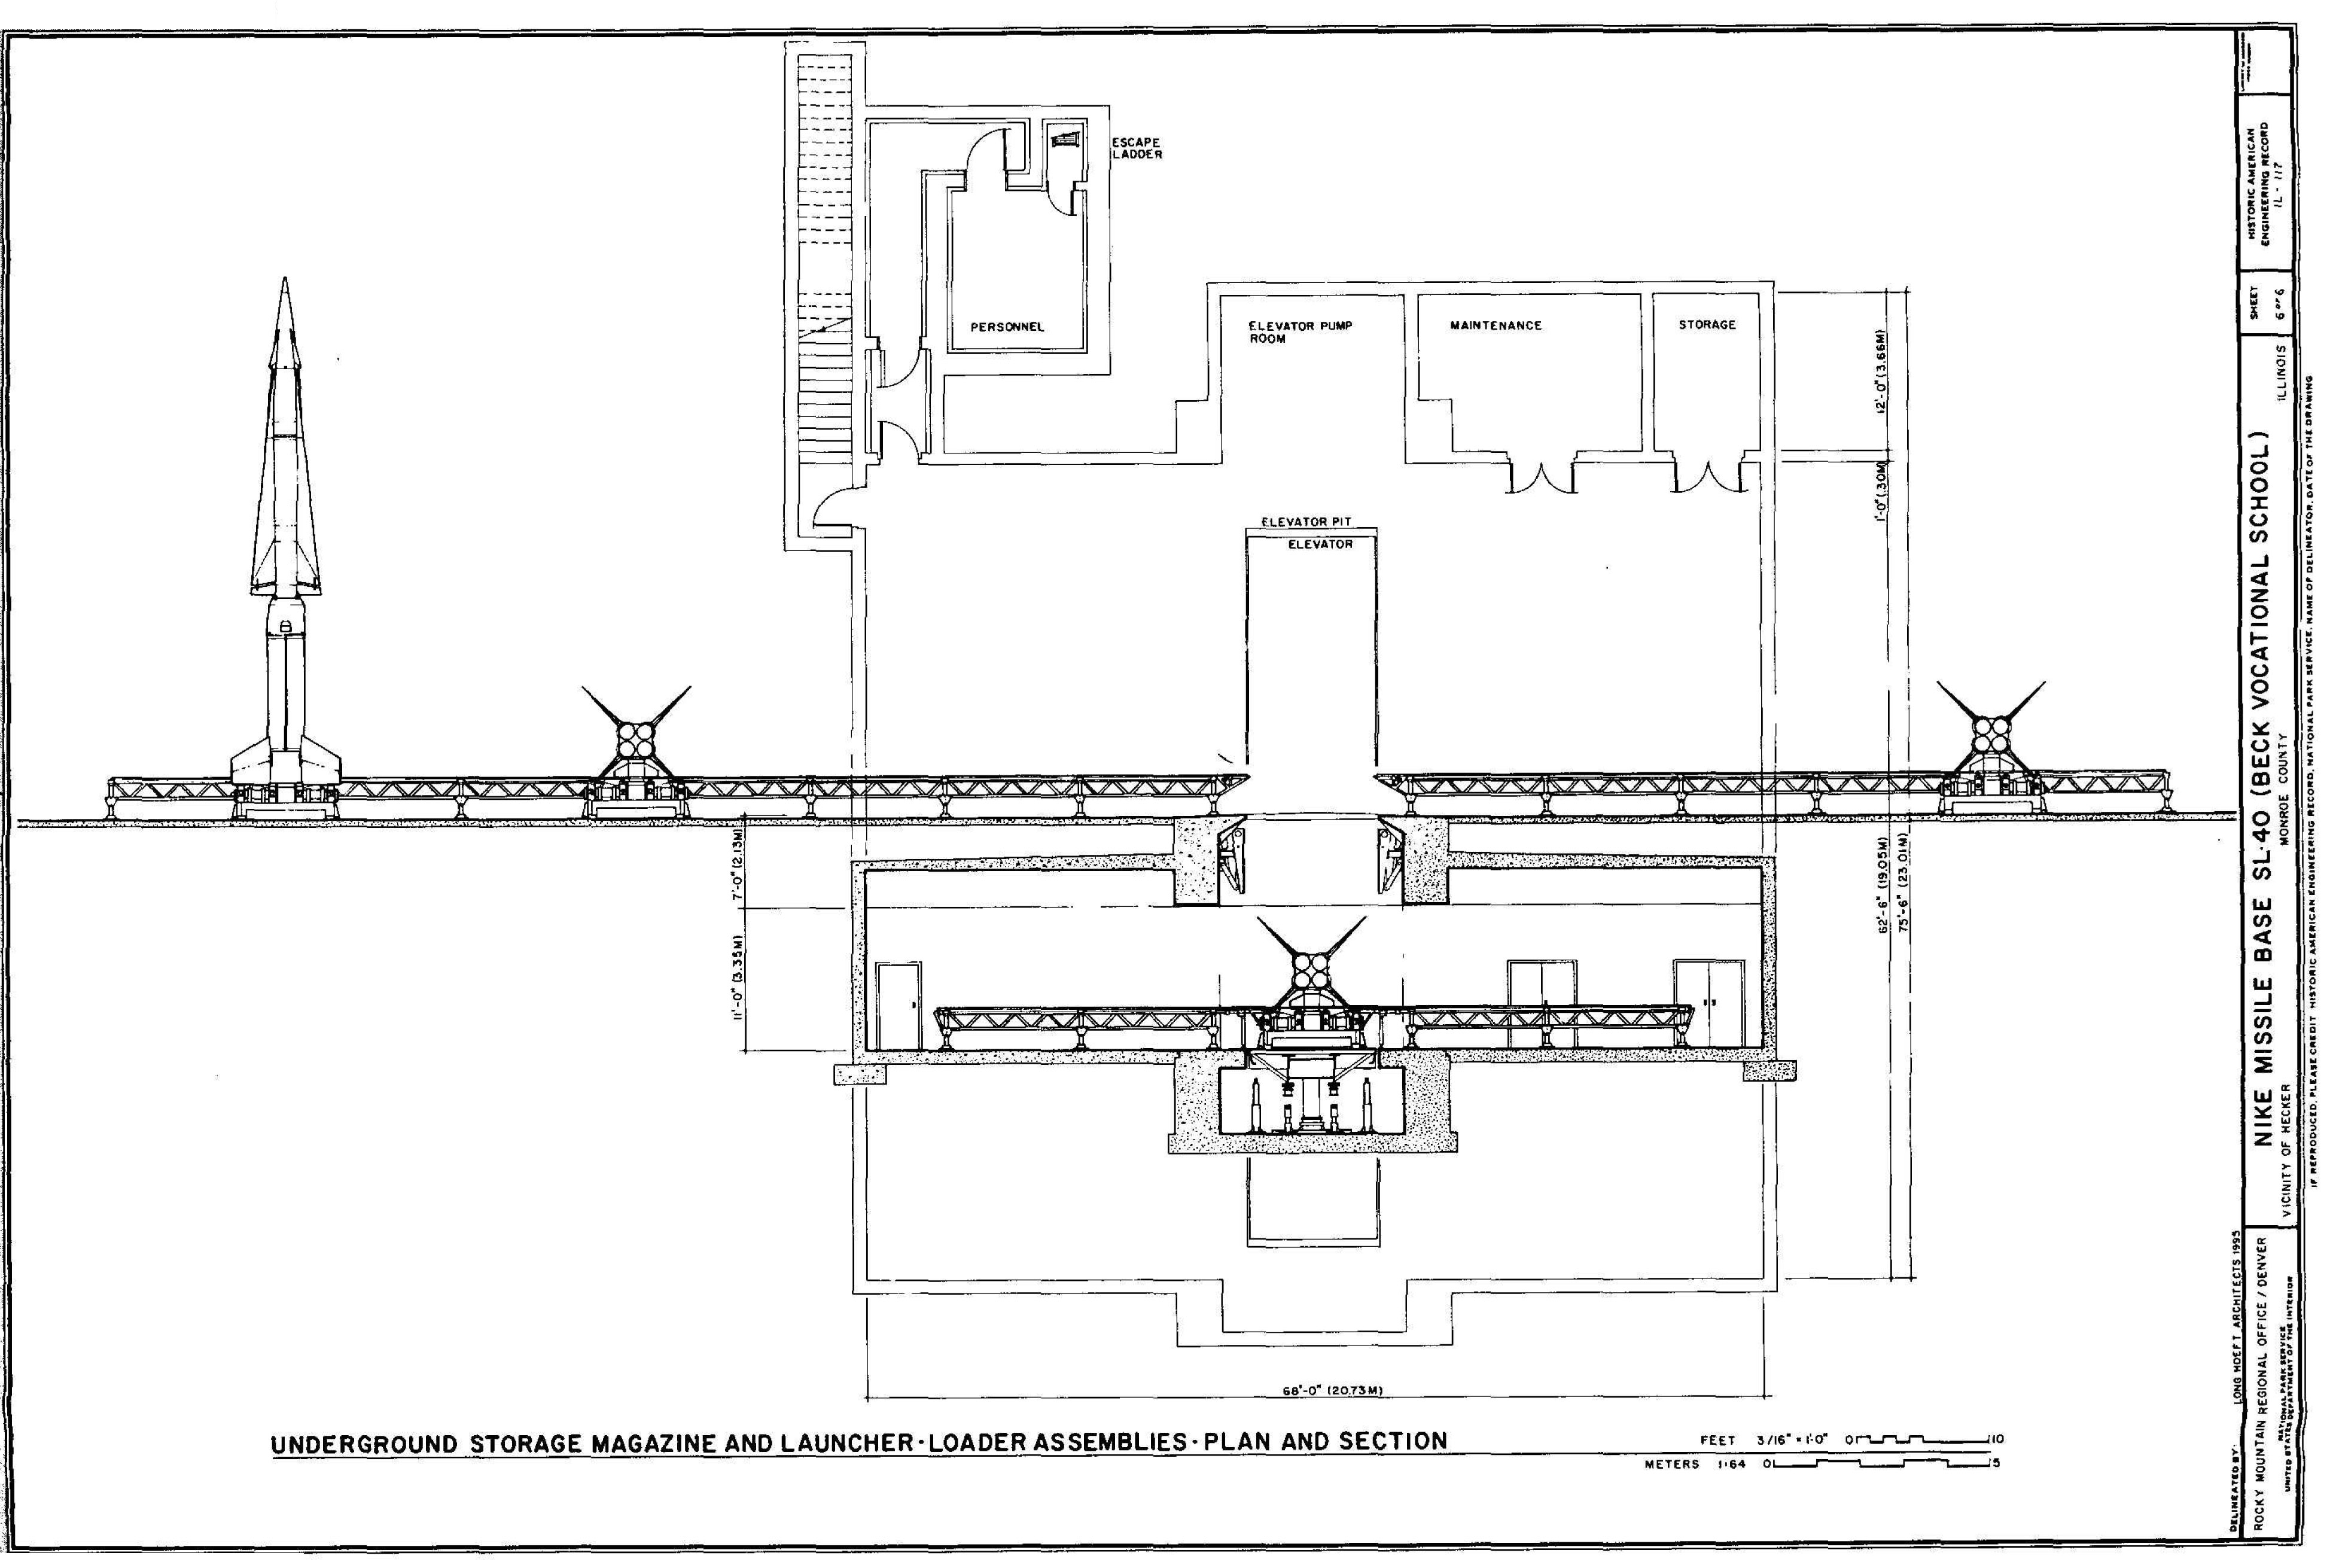 Last Line Of Defense Nike Missile Sites In Illinois Ajax Boiler Wiring Diagram Underground Storage Magazine And Launcher Loader Assemblies